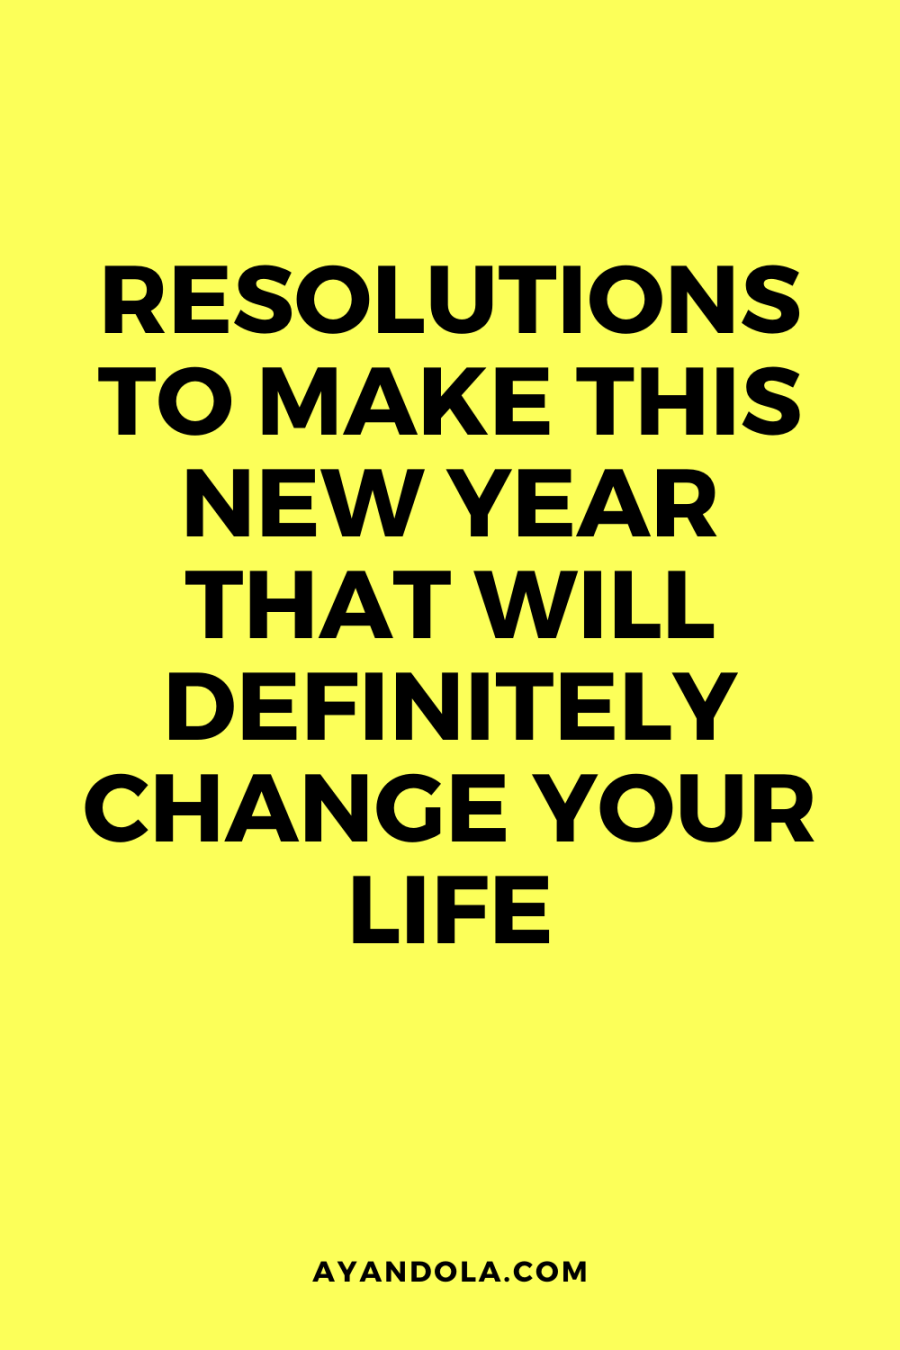 life-changing resolutions to make this New Year